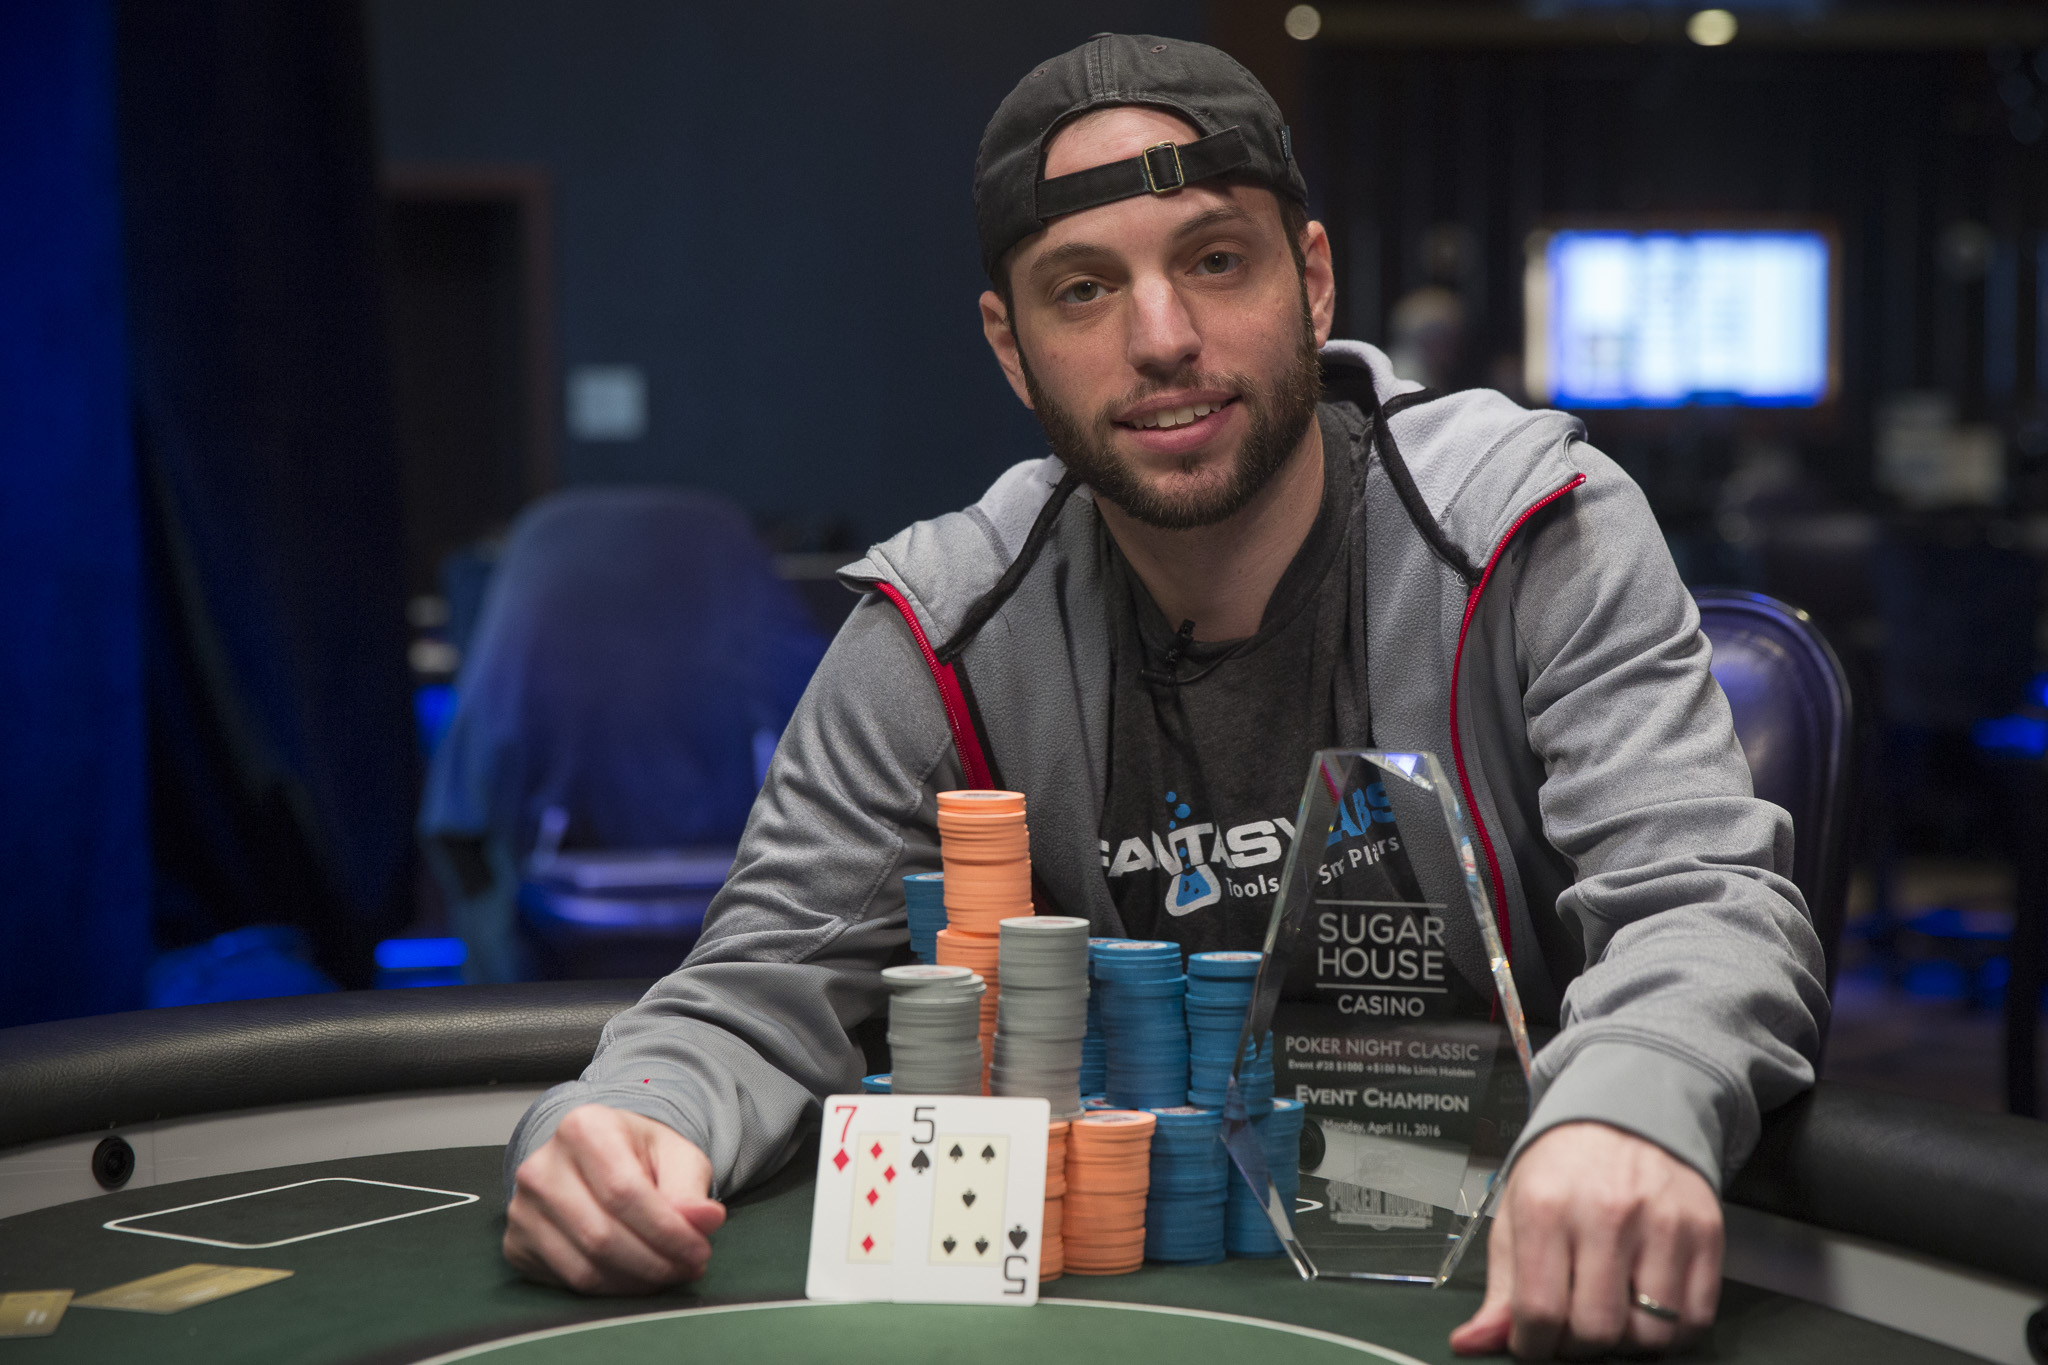 Adam Levitan Wins Poker Night in America Poker Night Classic Main Event at SugarHouse Casino